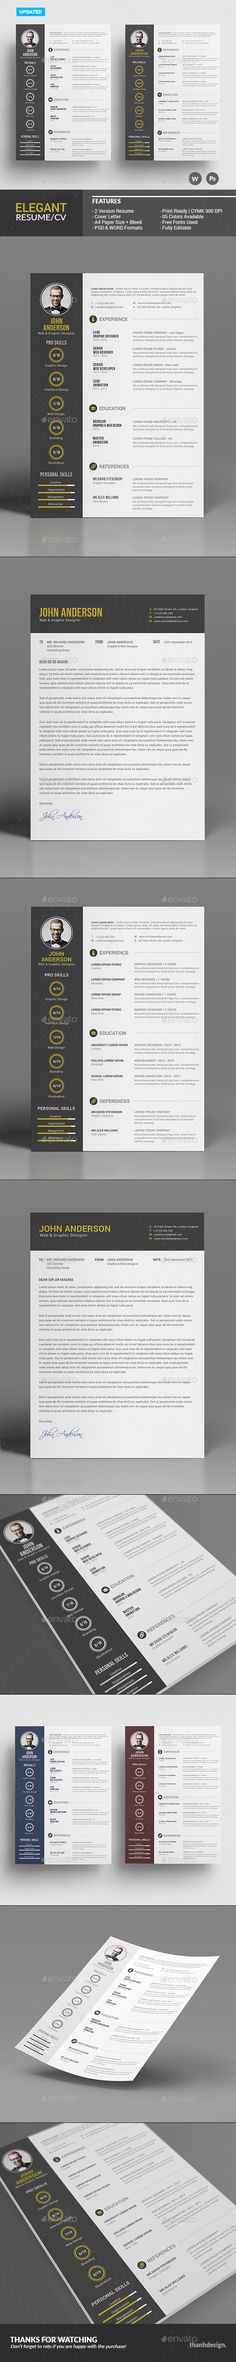 Photography Resume Portfolio Pack Portfolio Pinterest - photography resume template